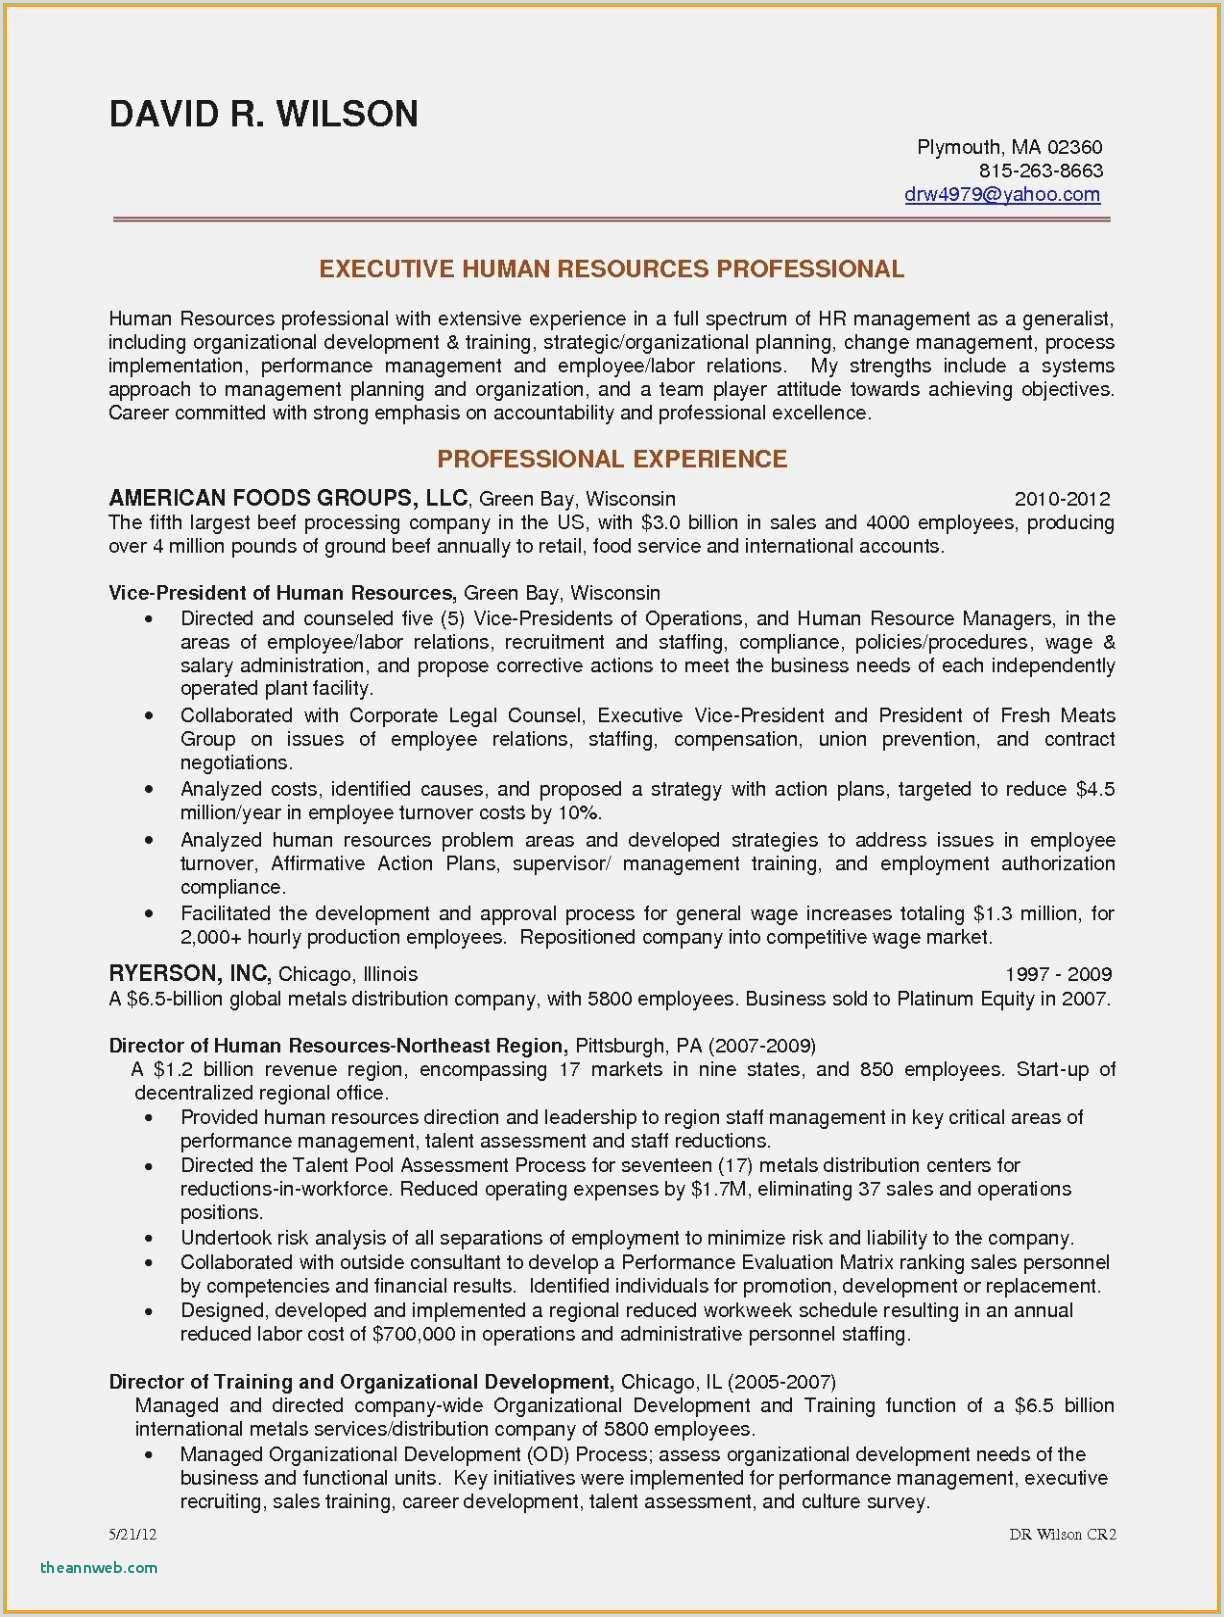 Hr Cover Letter Experience New Sample Cover Letter for